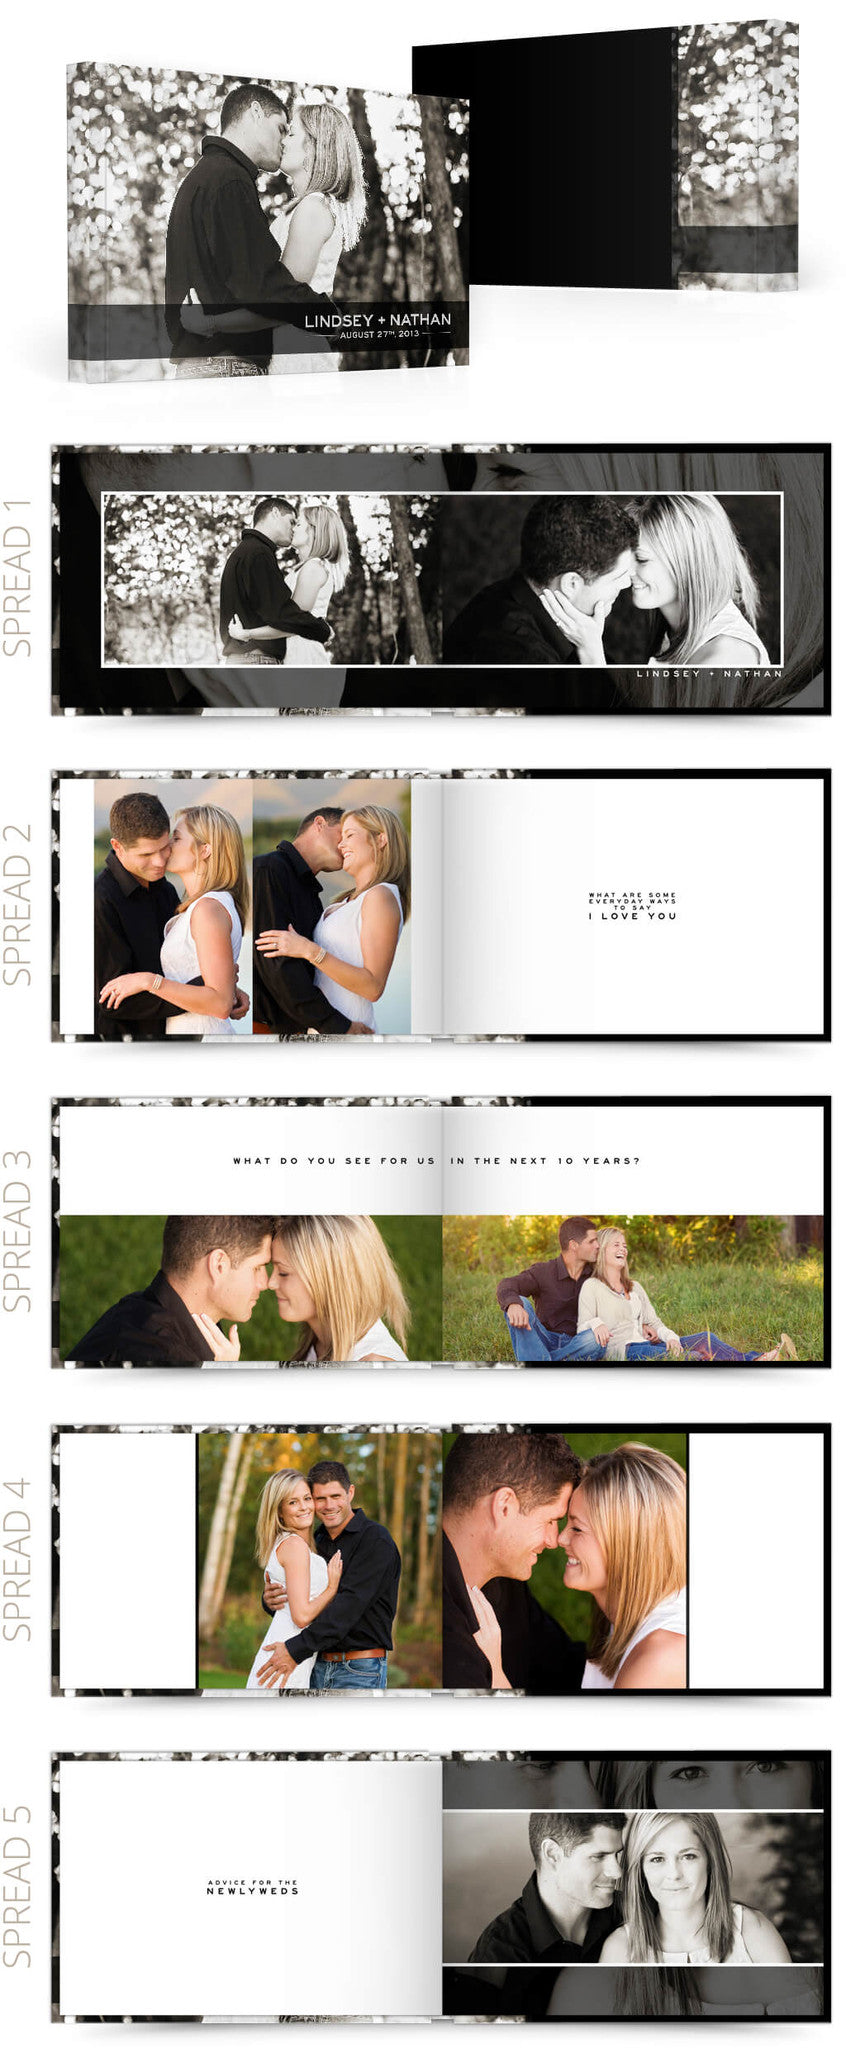 Modern Reception 12x8 Album Photoshop Templates